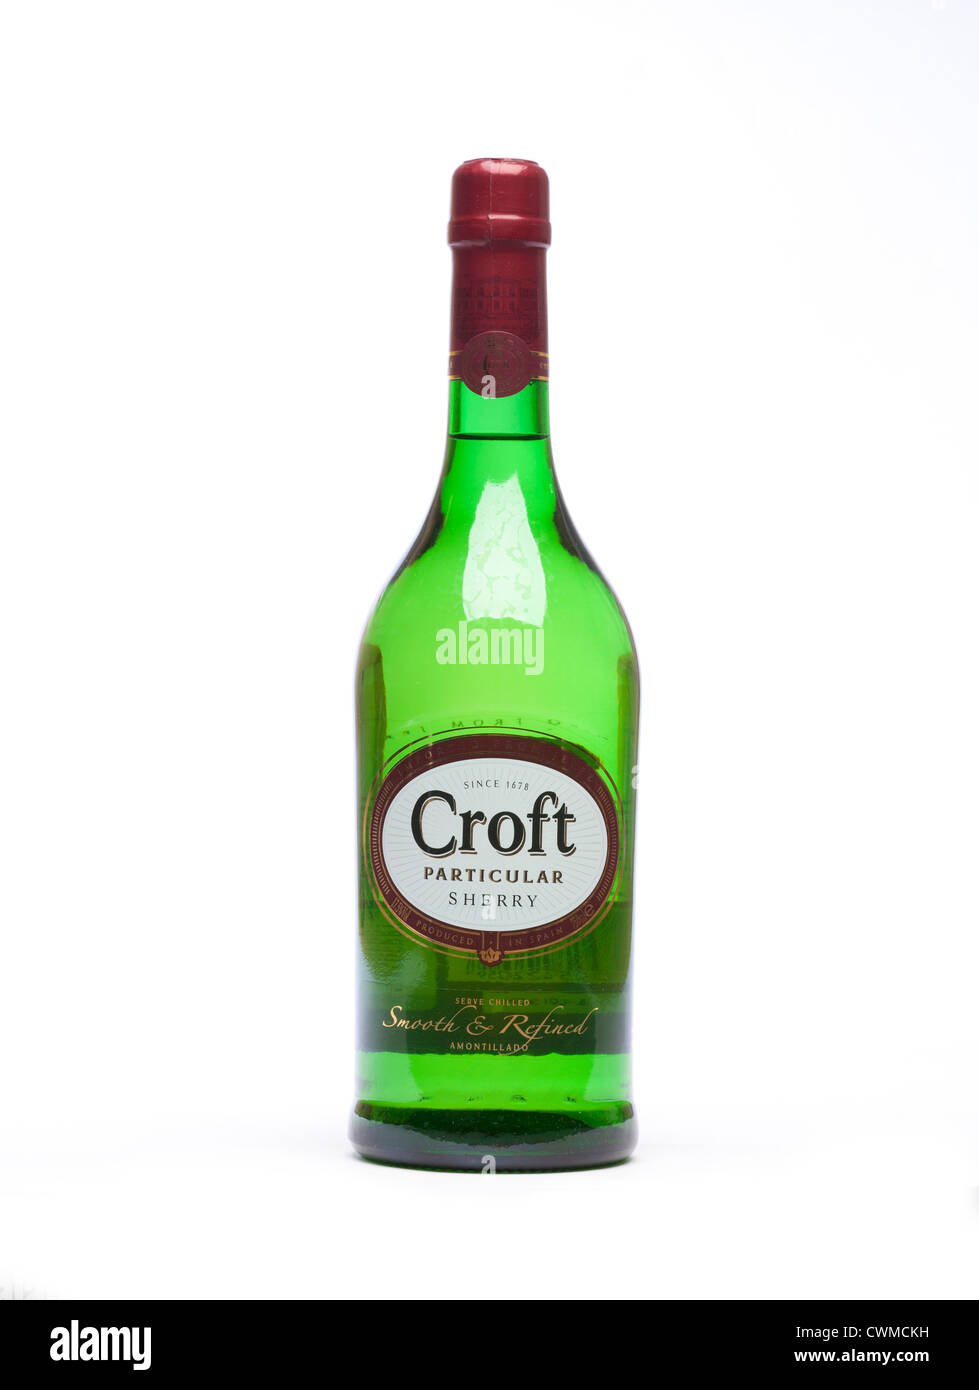 bottle of Croft Particular Amontillado sherry - Stock Image